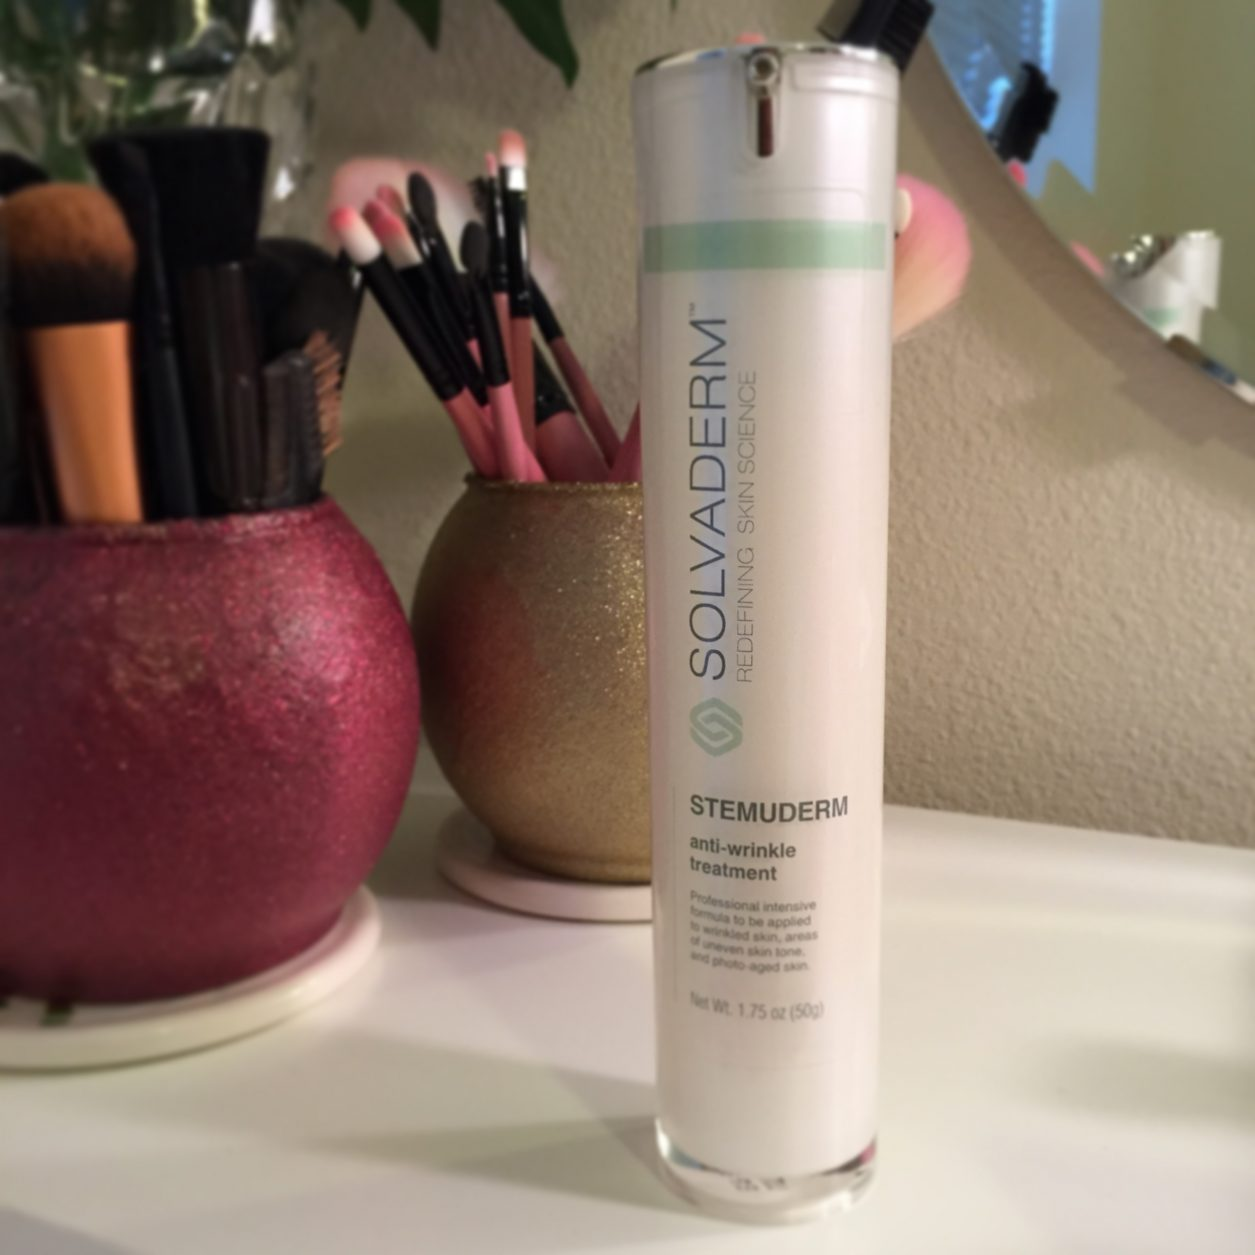 Solvaderm S Stemuderm An Excellent Anti Wrinkle Treatment